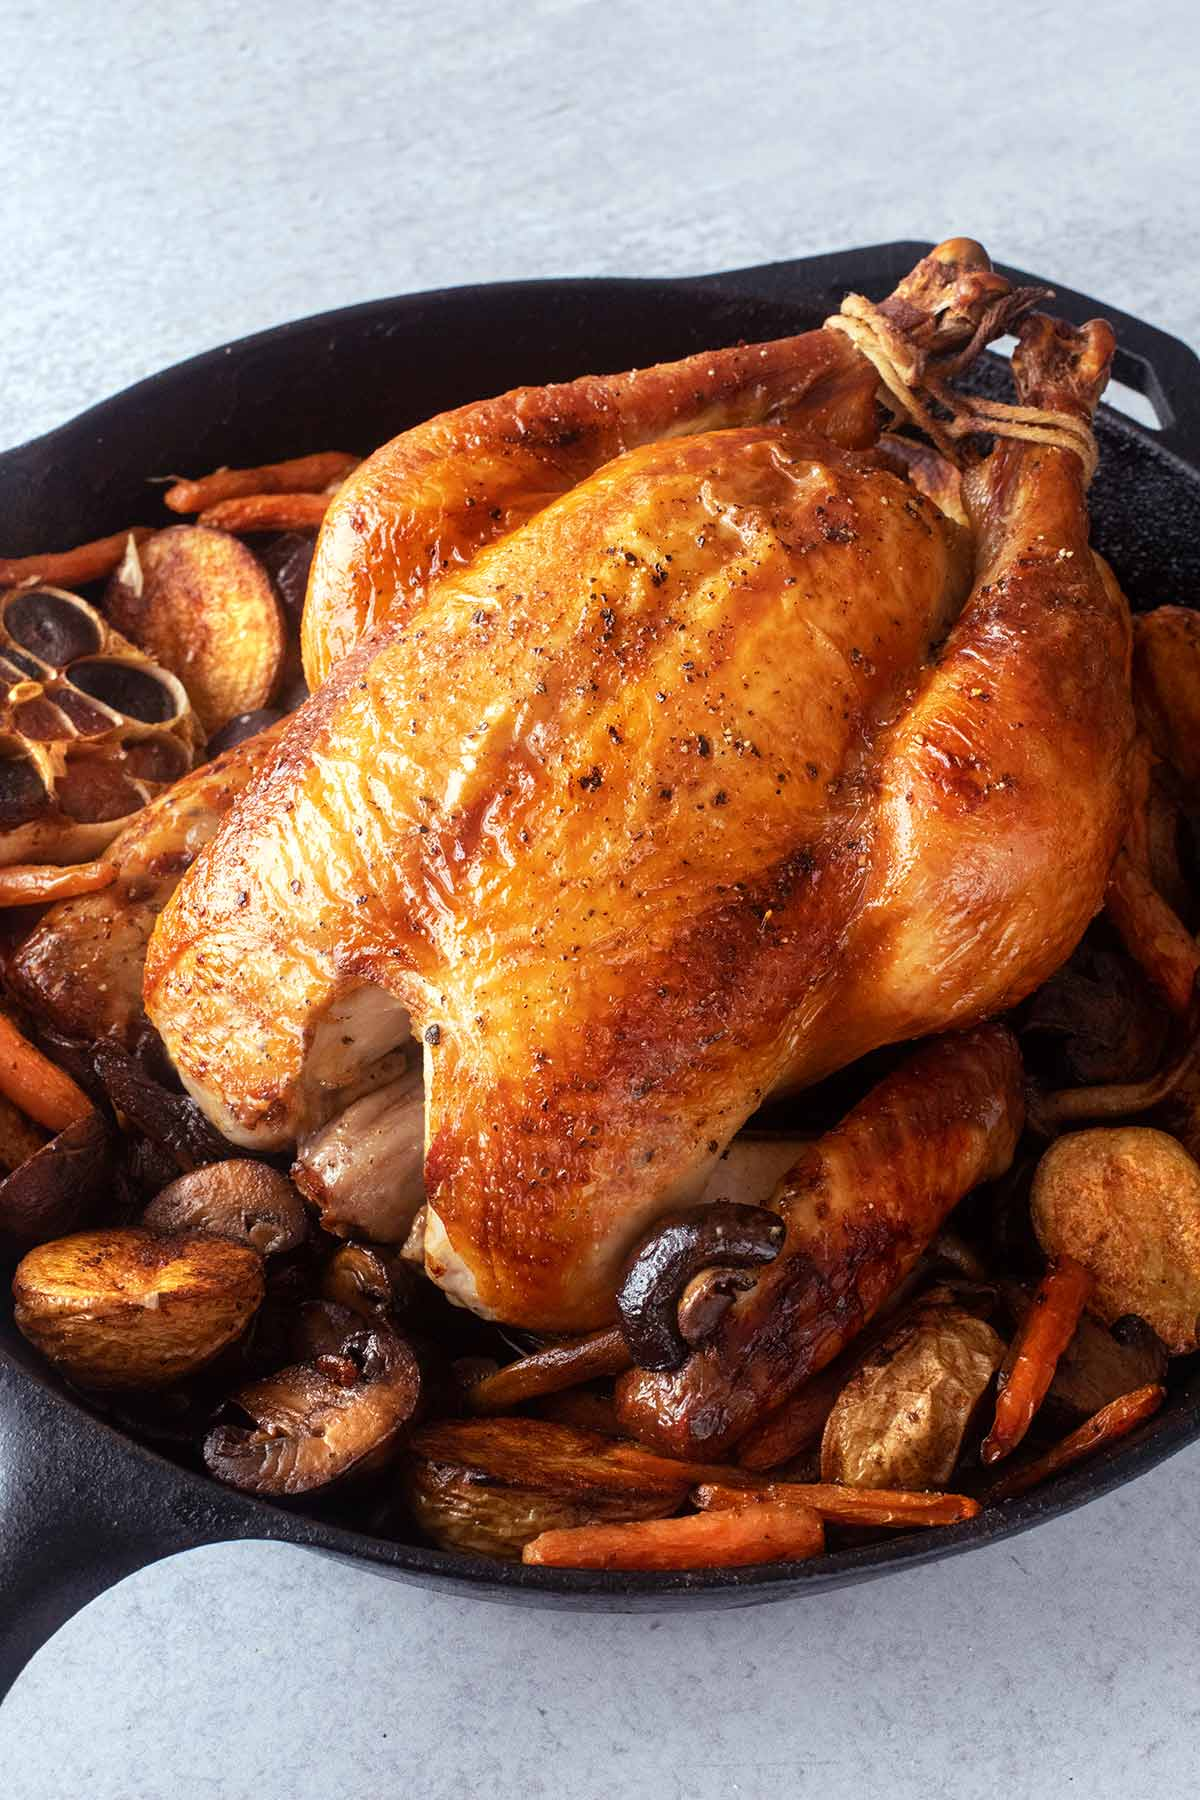 A better brined roast chicken in a cast iron Dutch oven surrounded by potatoes, mushrooms, carrots, and a halved head of garlic.